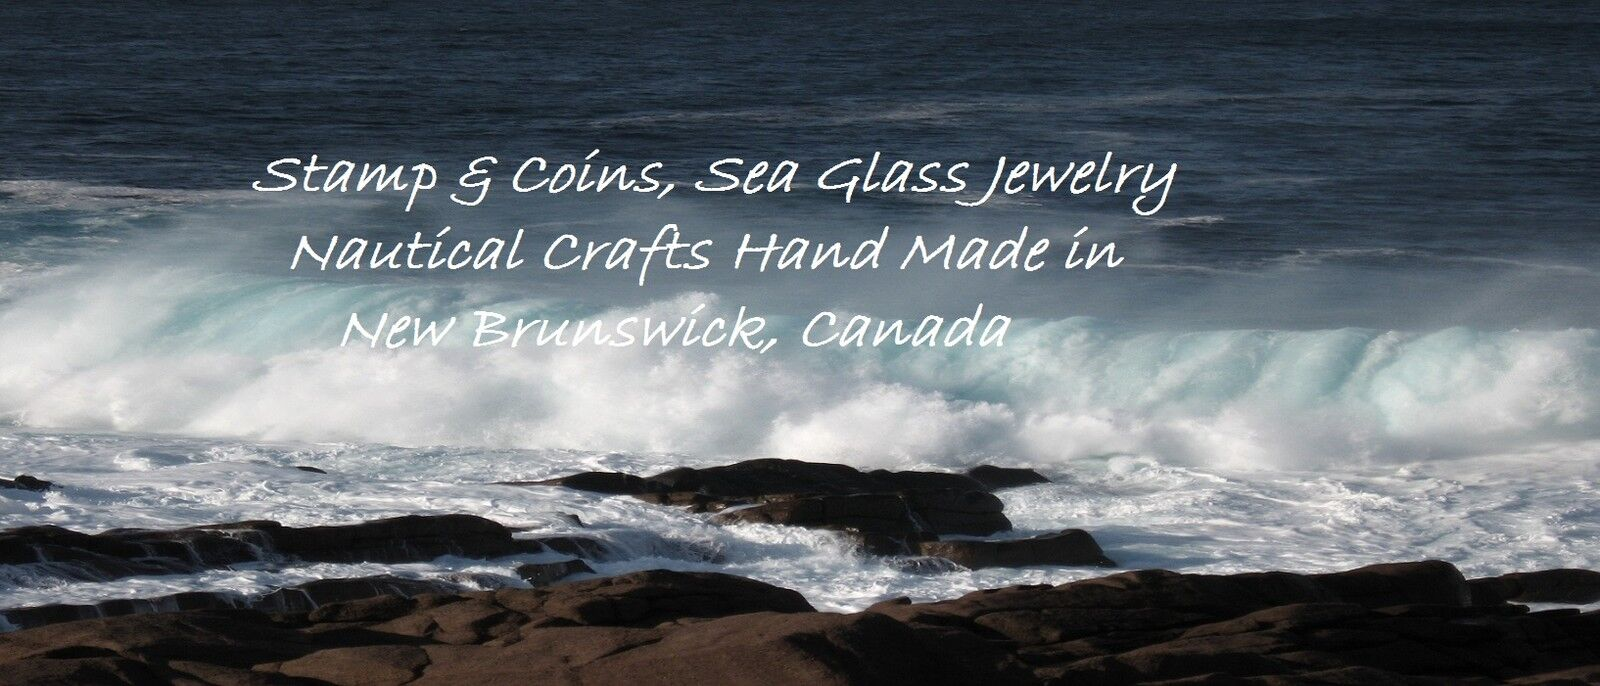 Coins-Stamps & Seaglass Jewelry